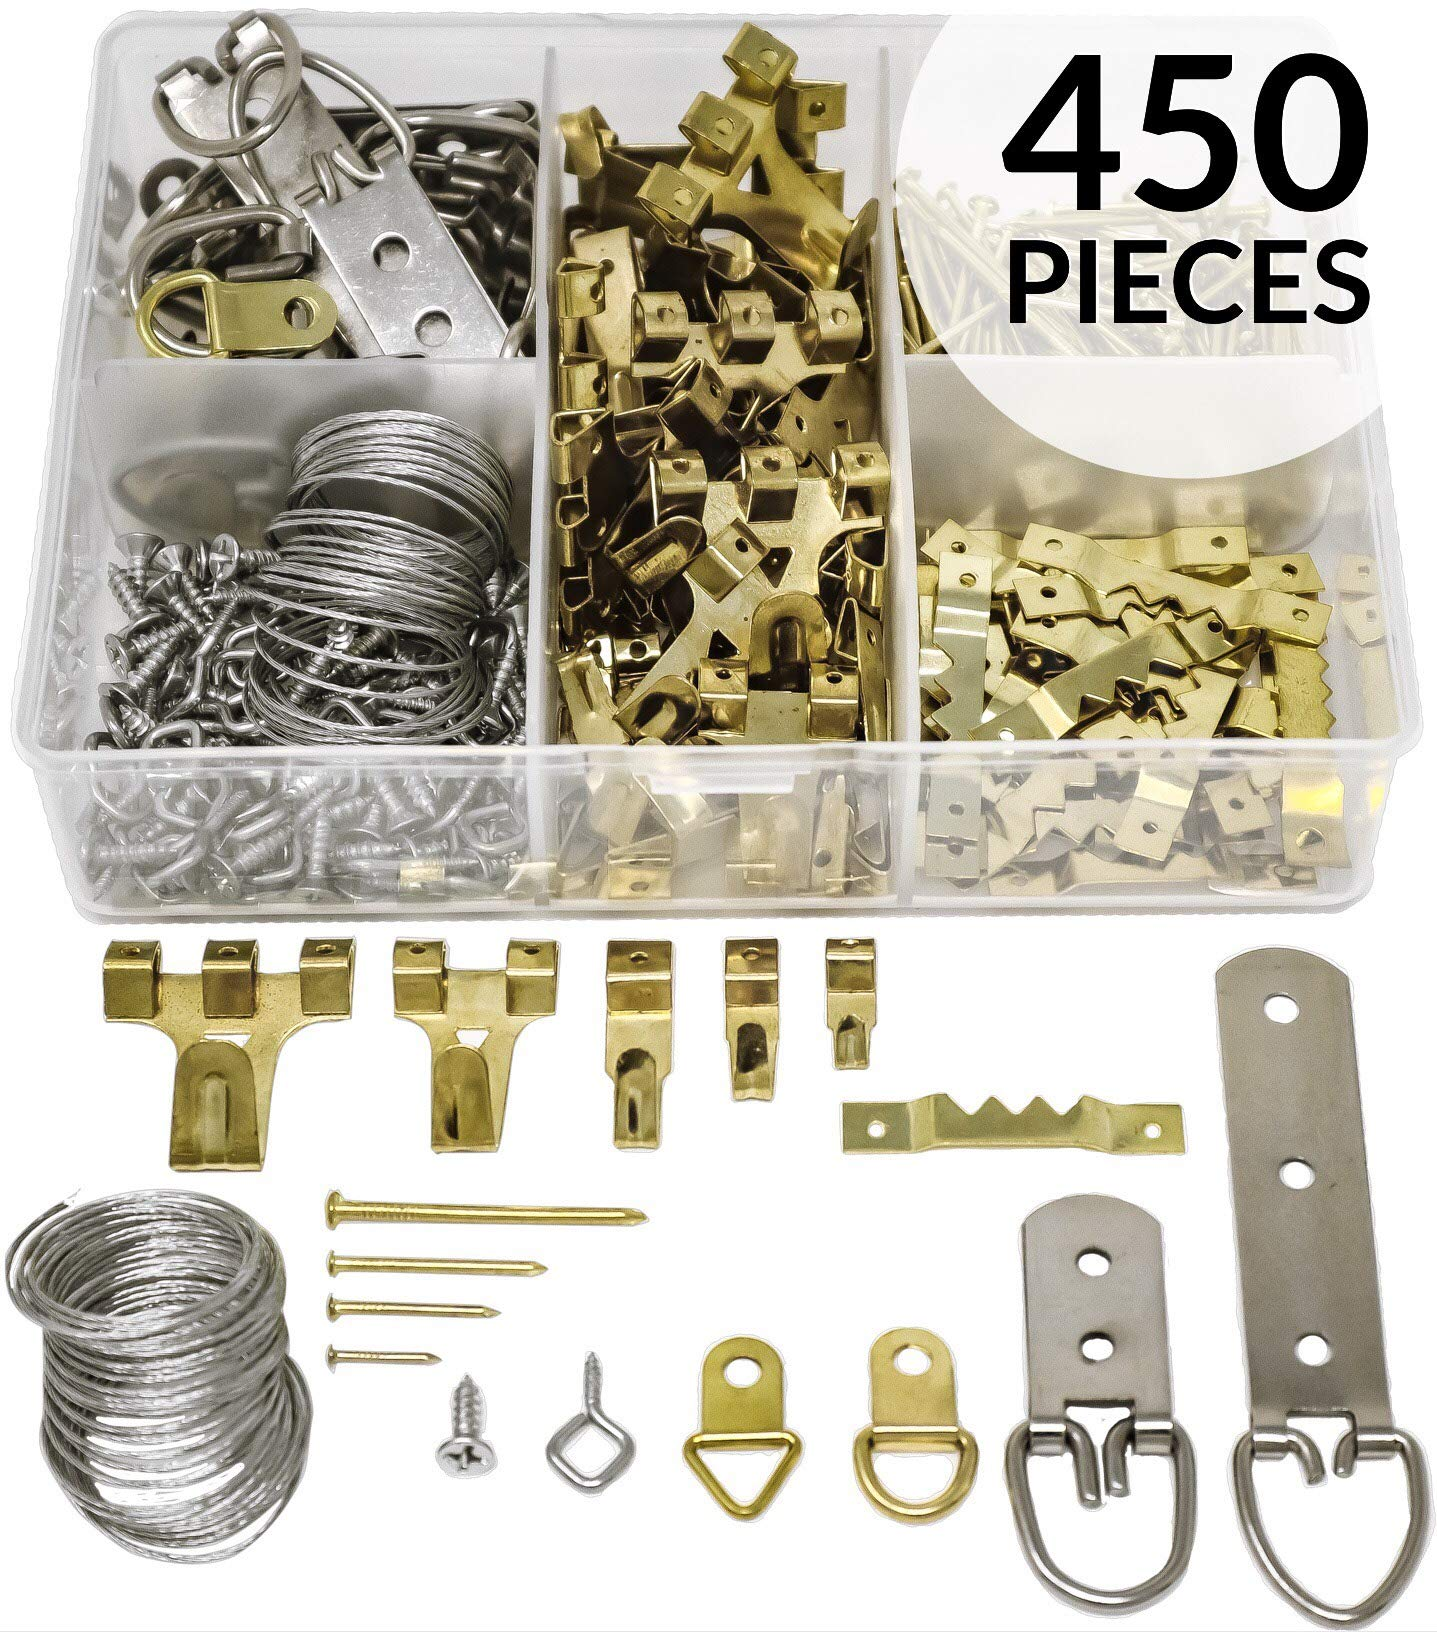 Picture Hanging Kit 450 Pieces   Hardware for Frames Heavy Duty   Great Assortment Includes: Screws, Nails, D Rings, Hooks, Wires, Sawtooth Hangers, Heavy Duty Hooks   Comes with Transparent Solid Box